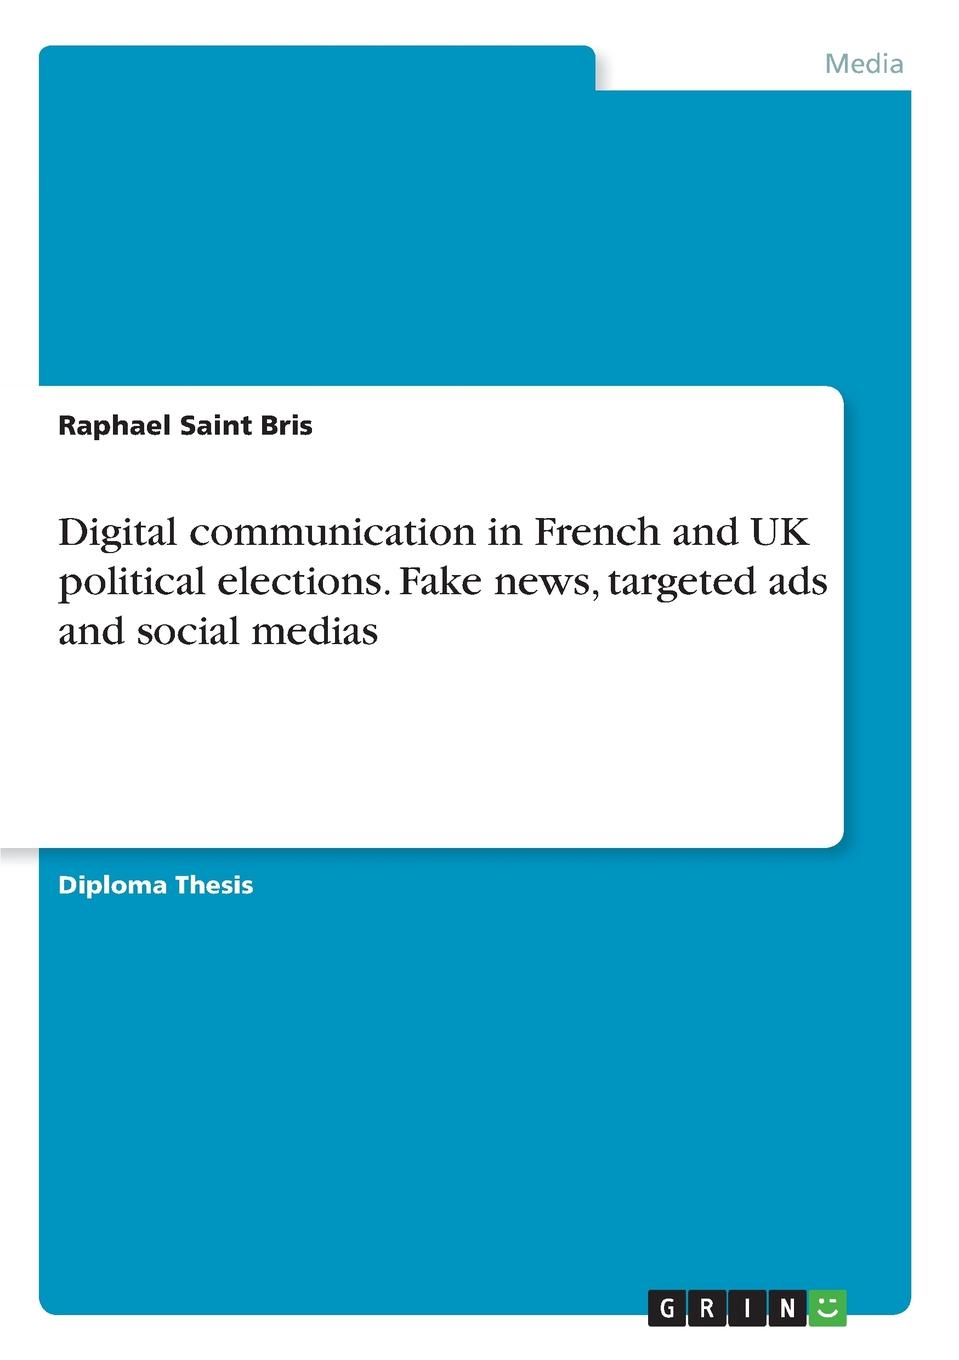 Raphael Saint Bris Digital communication in French and UK political elections. Fake news, targeted ads and social medias language use and communication of mdgs